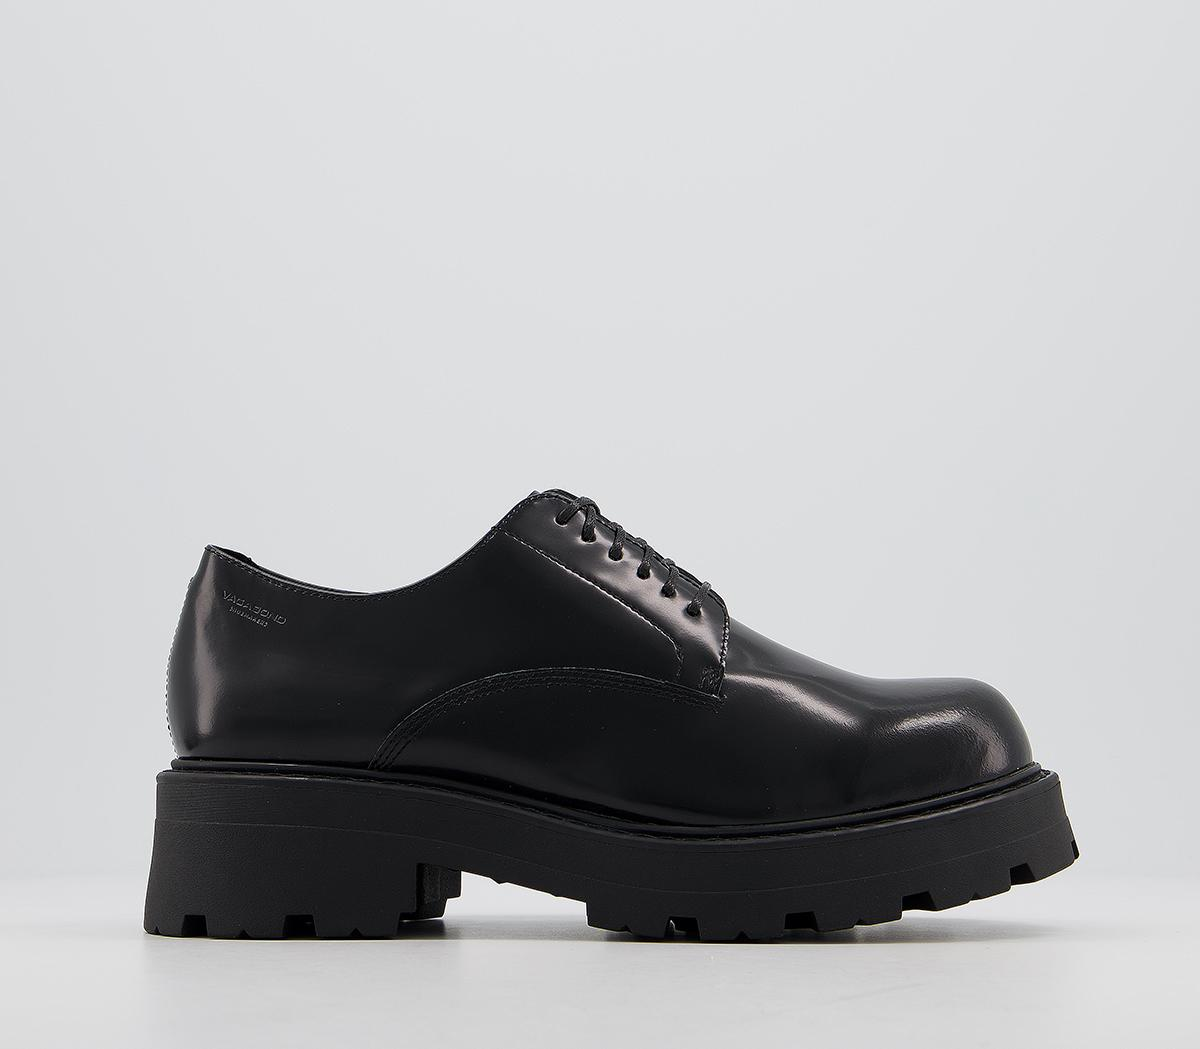 Cosmo 2.0 Shoes